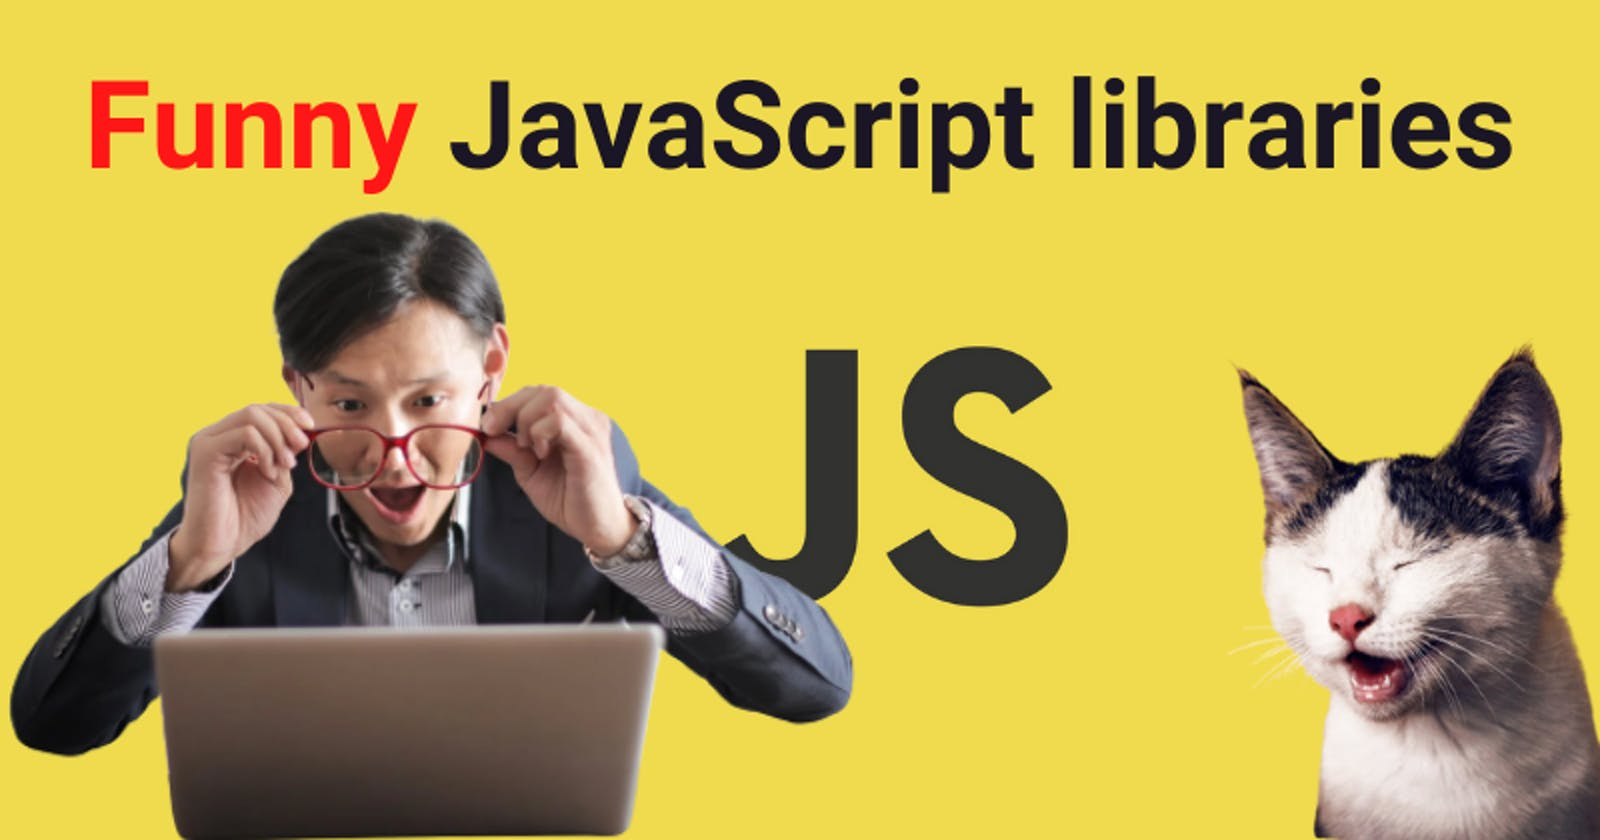 Funny JavaScript frameworks - You don't know about